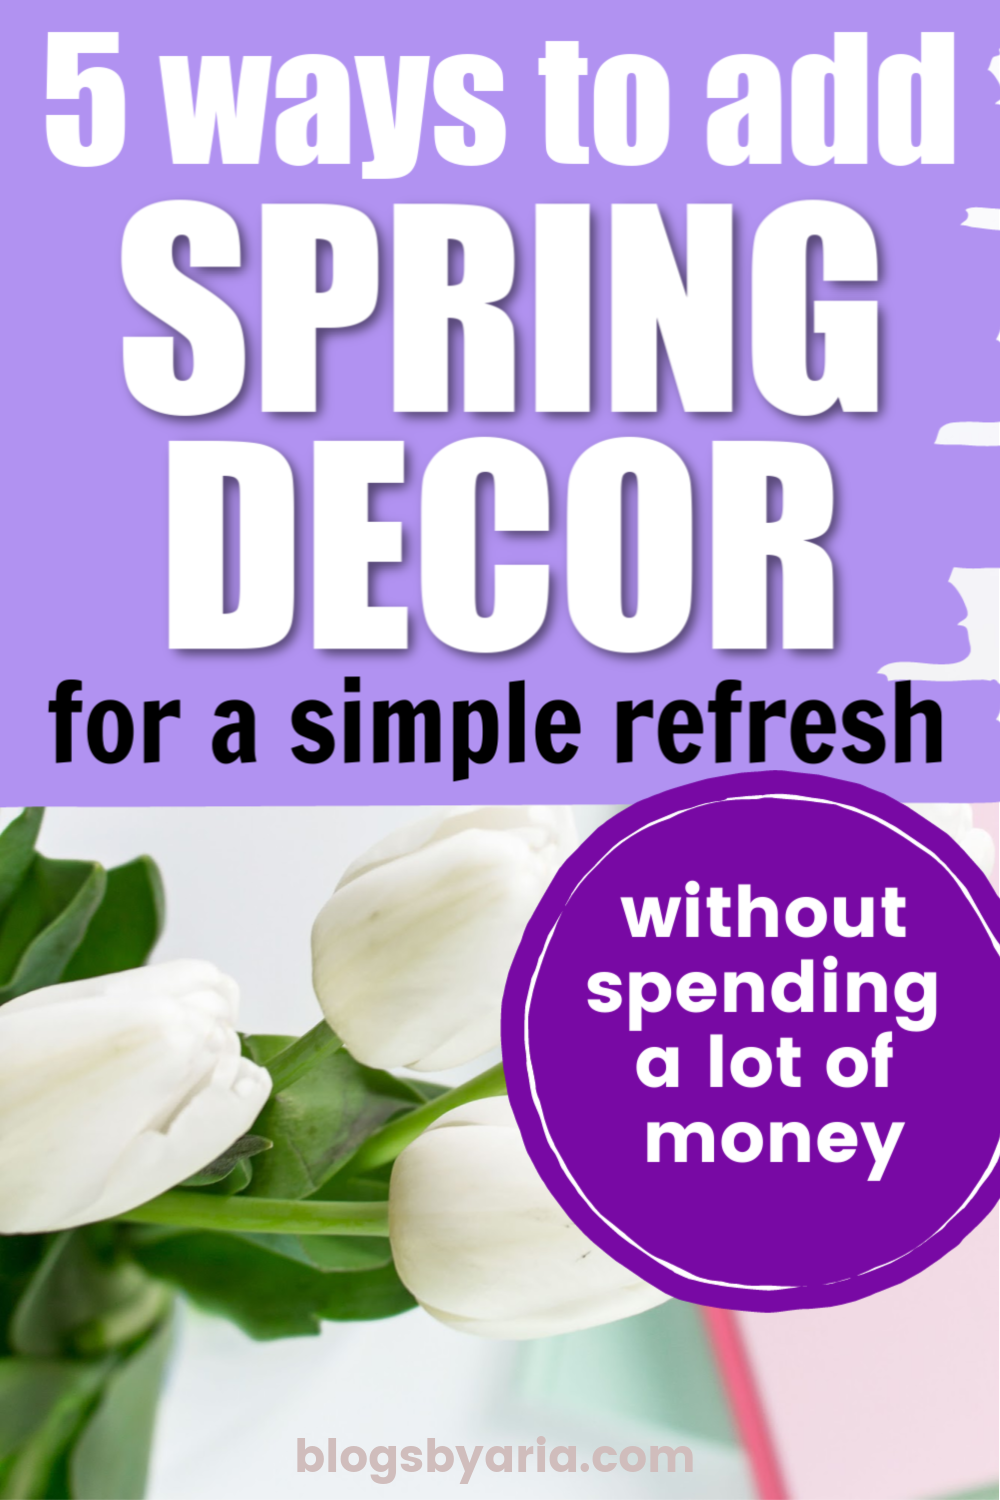 5 ways to add spring decor without spending a lot of money